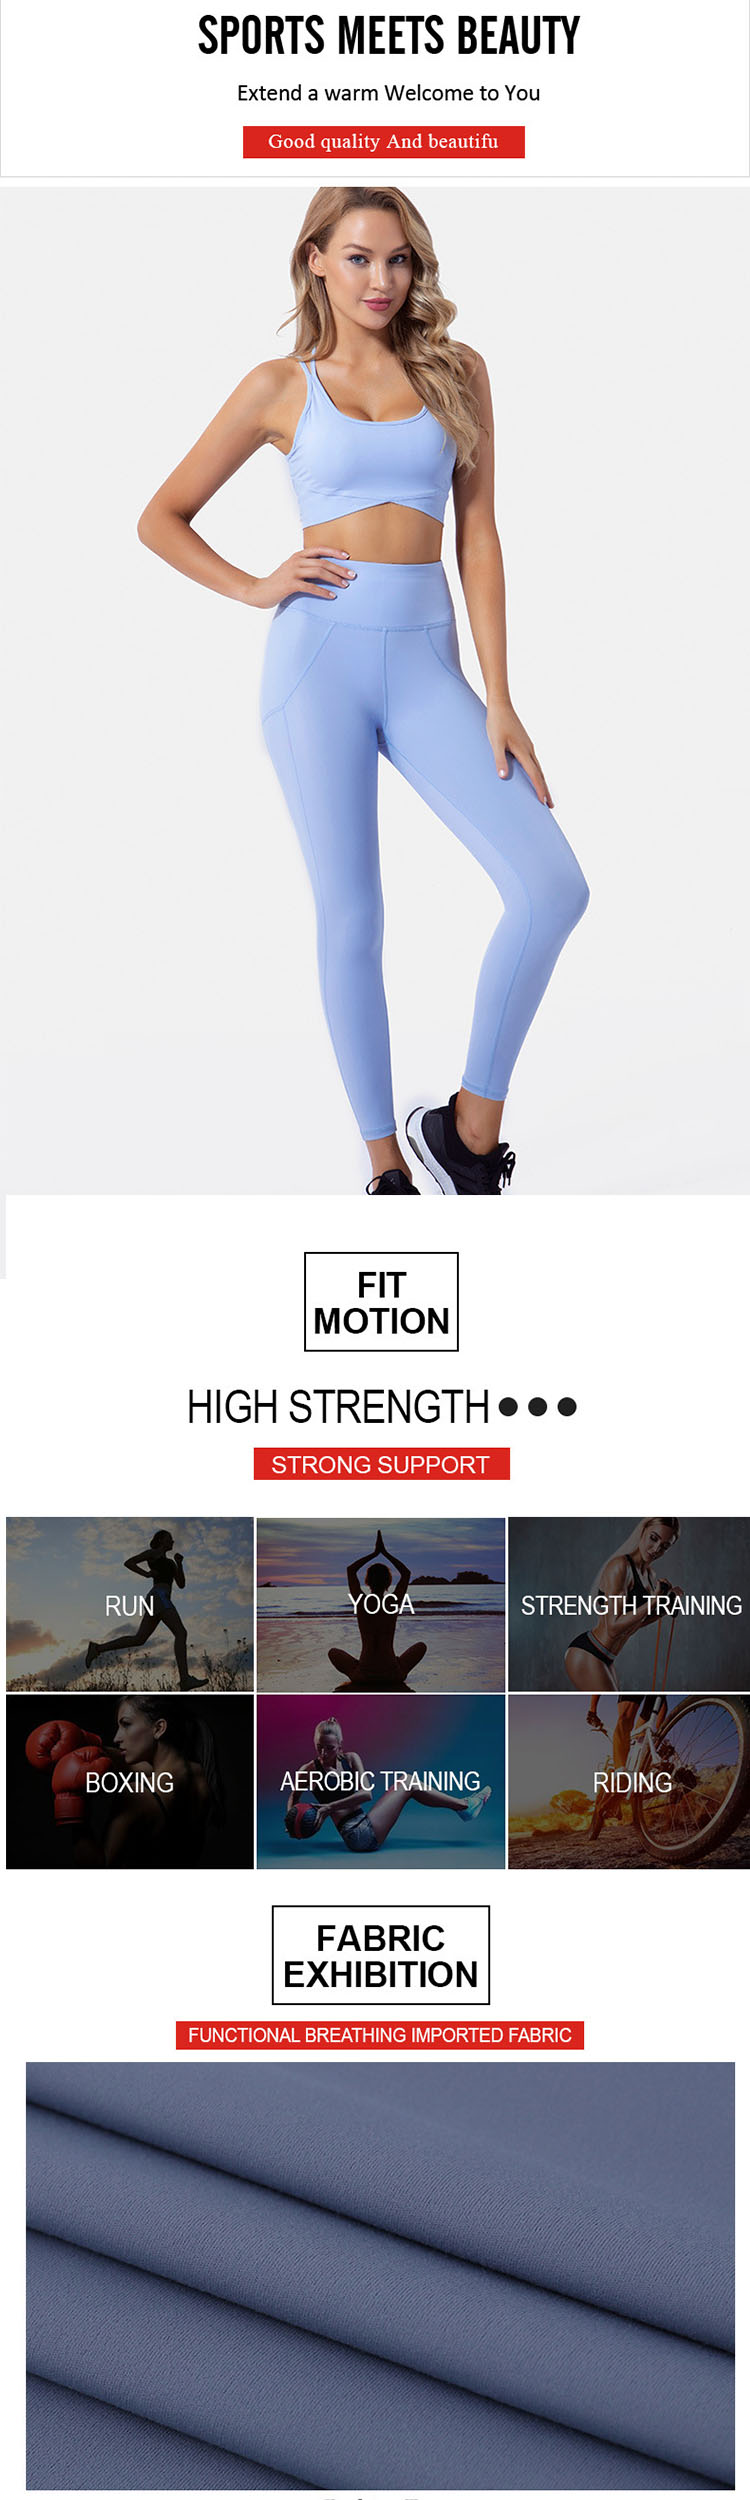 The selection of the green gym leggings profile can strongly wrap the auxiliary milk and bring better functional effects for female bodybuilders.